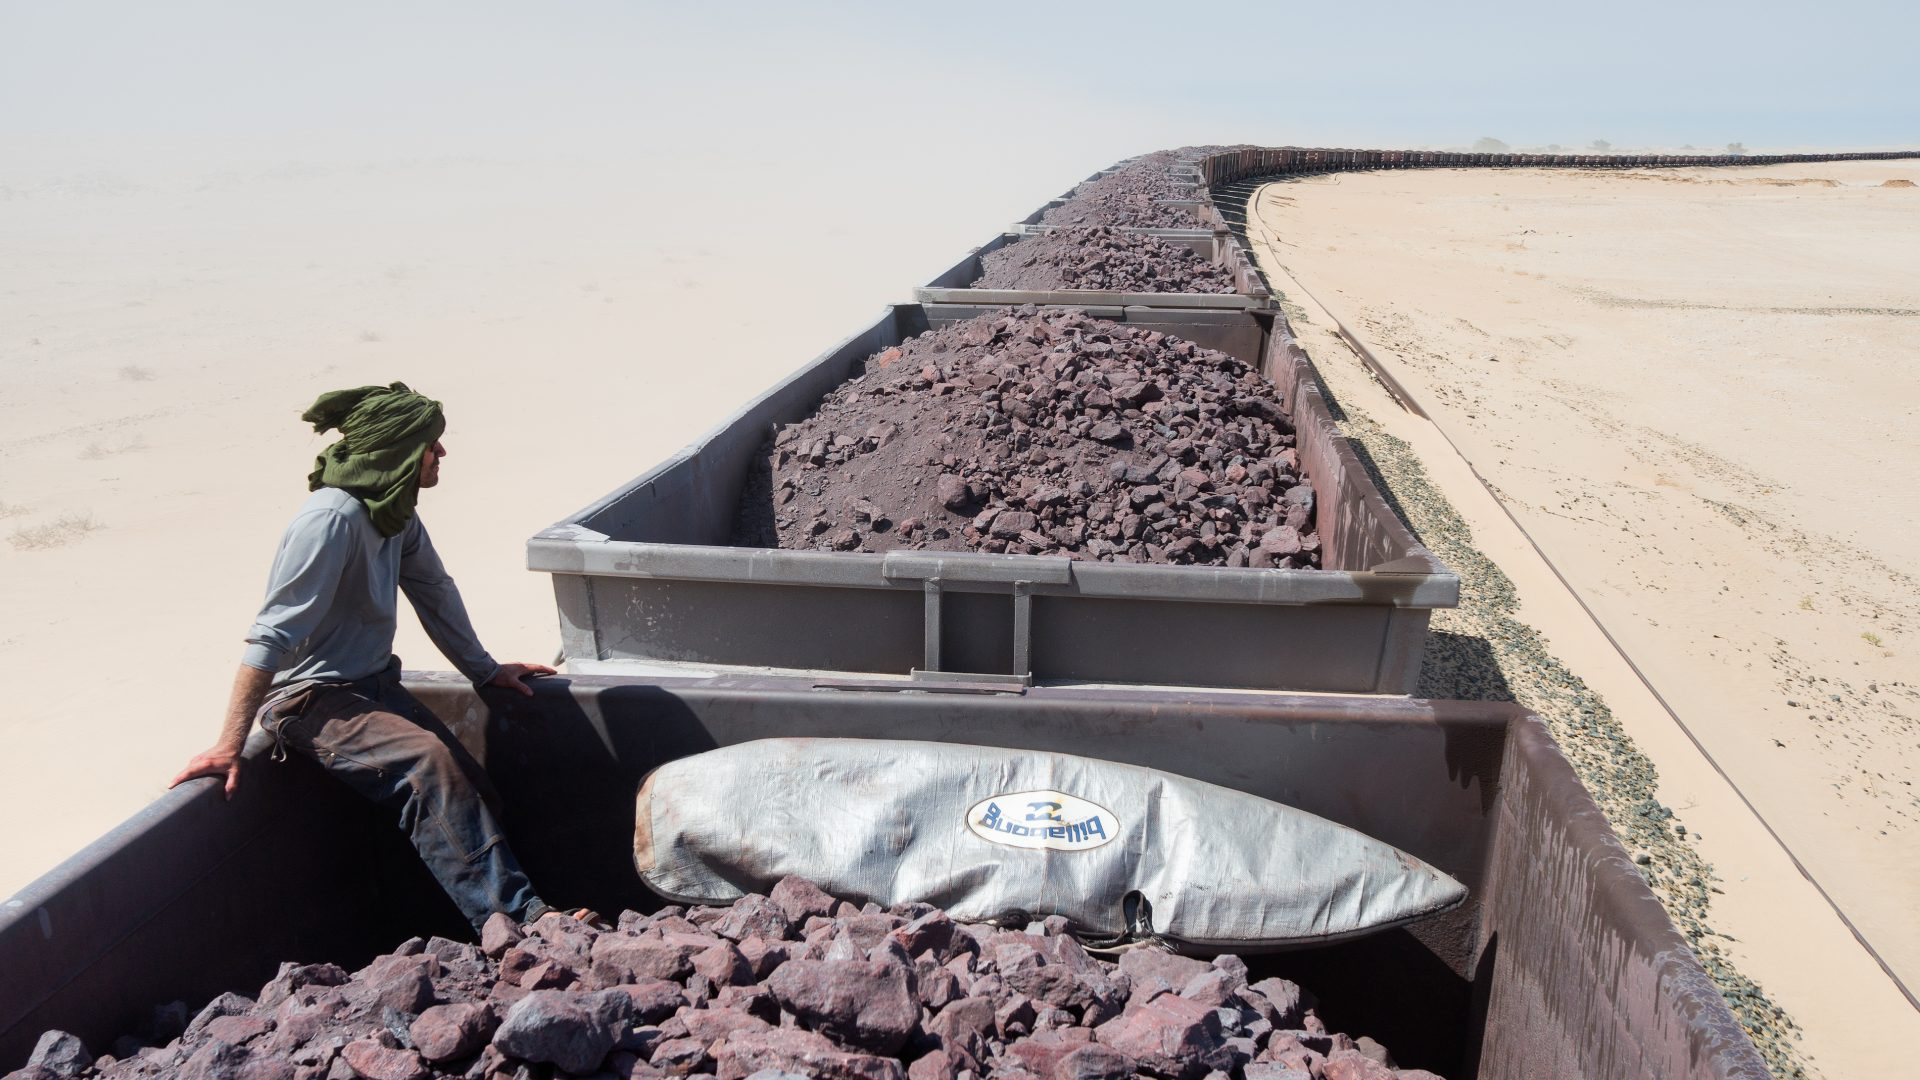 A man can be seen surveying the desert while sitting onboard the train, on top of piles of iron ore, during the long journey through the Sahara desert.